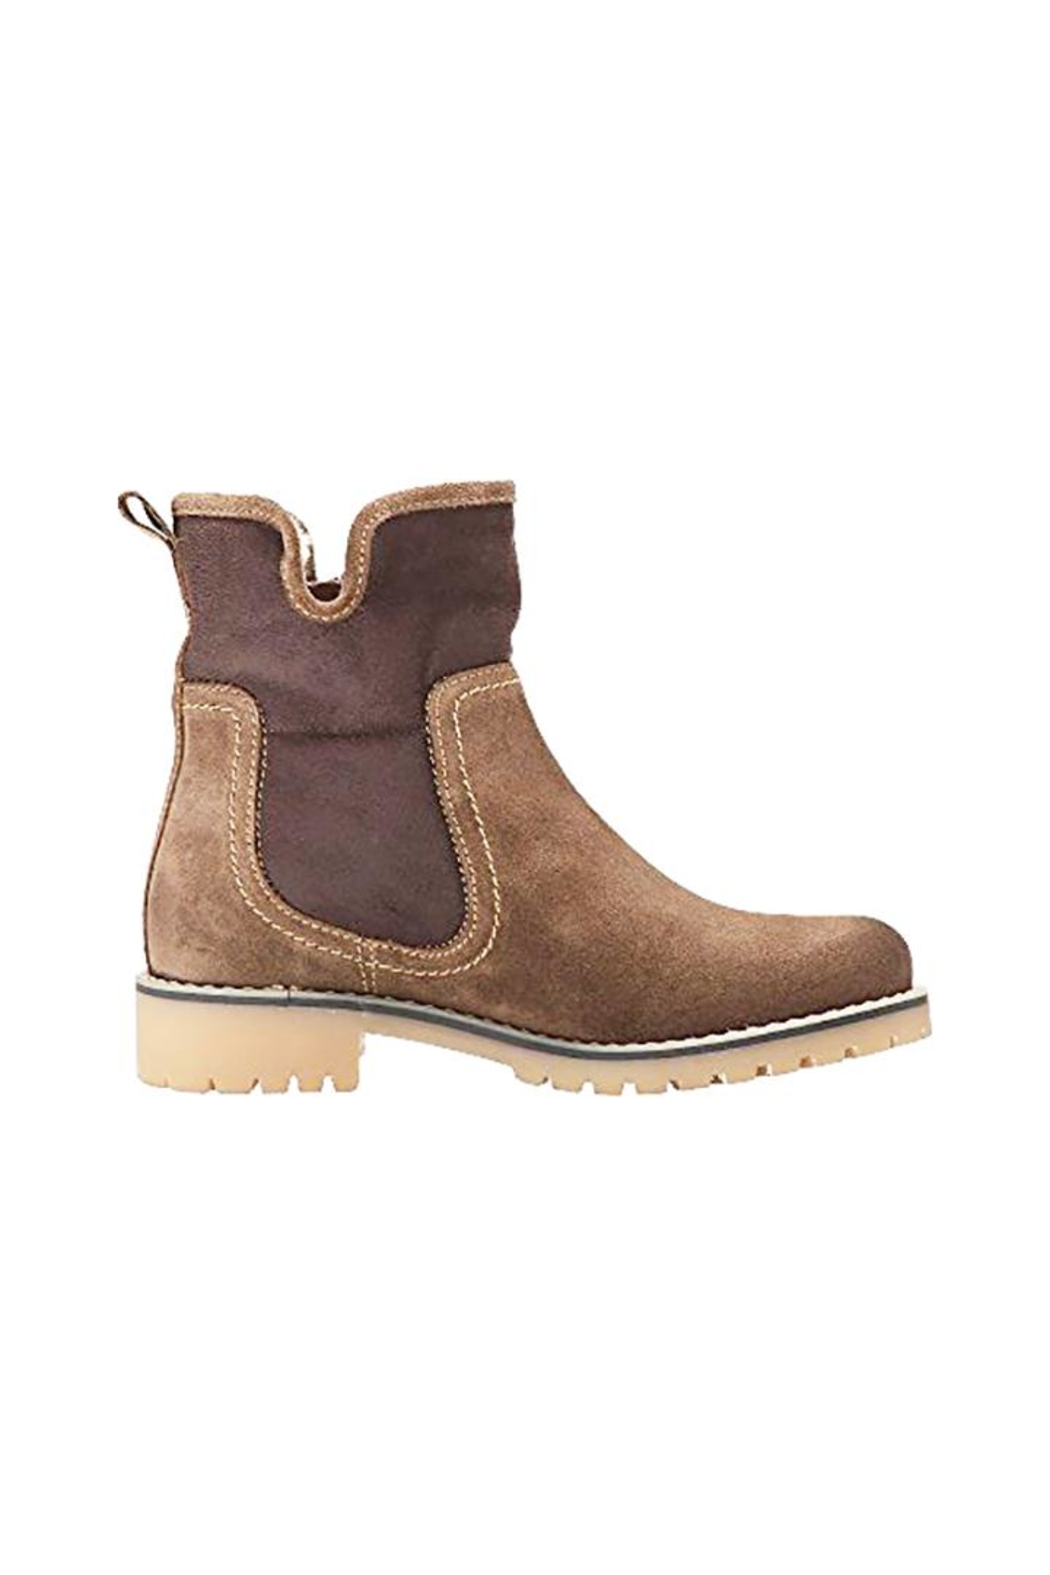 Eric Michael Denver Western-Inspired Boot - Side Cropped Image